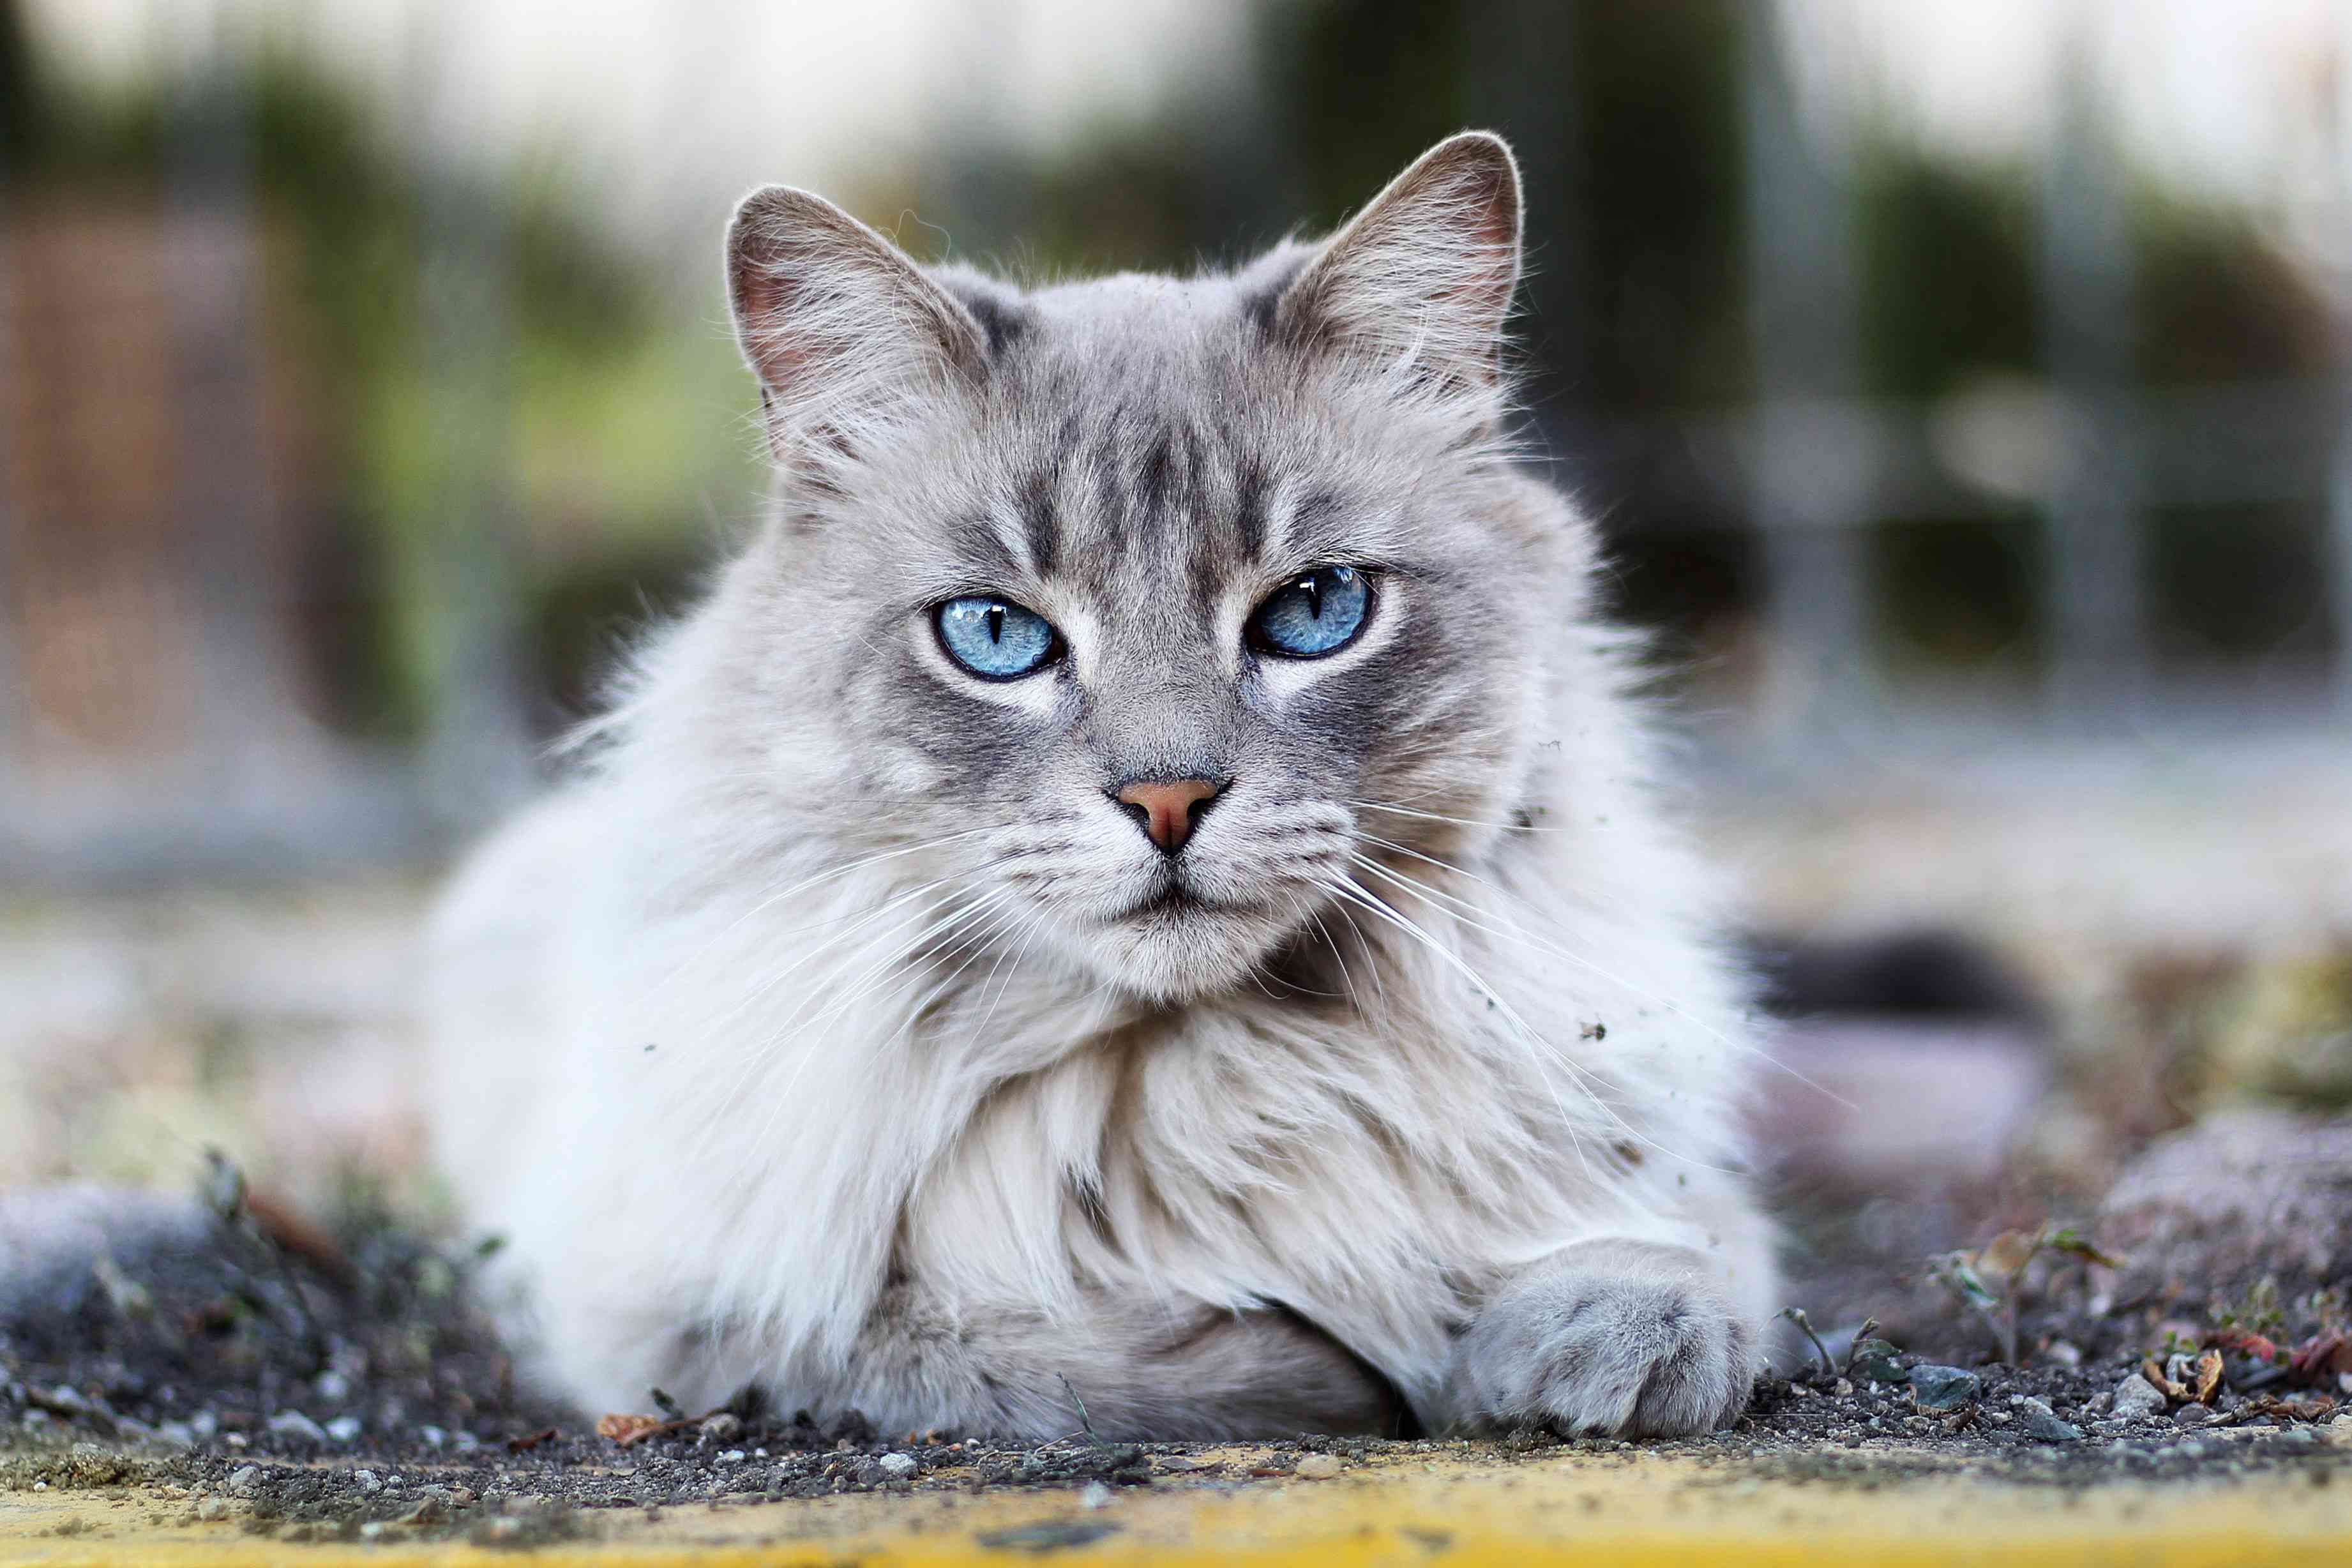 A gray Maine coon cat with blue eyes looking at the camera.